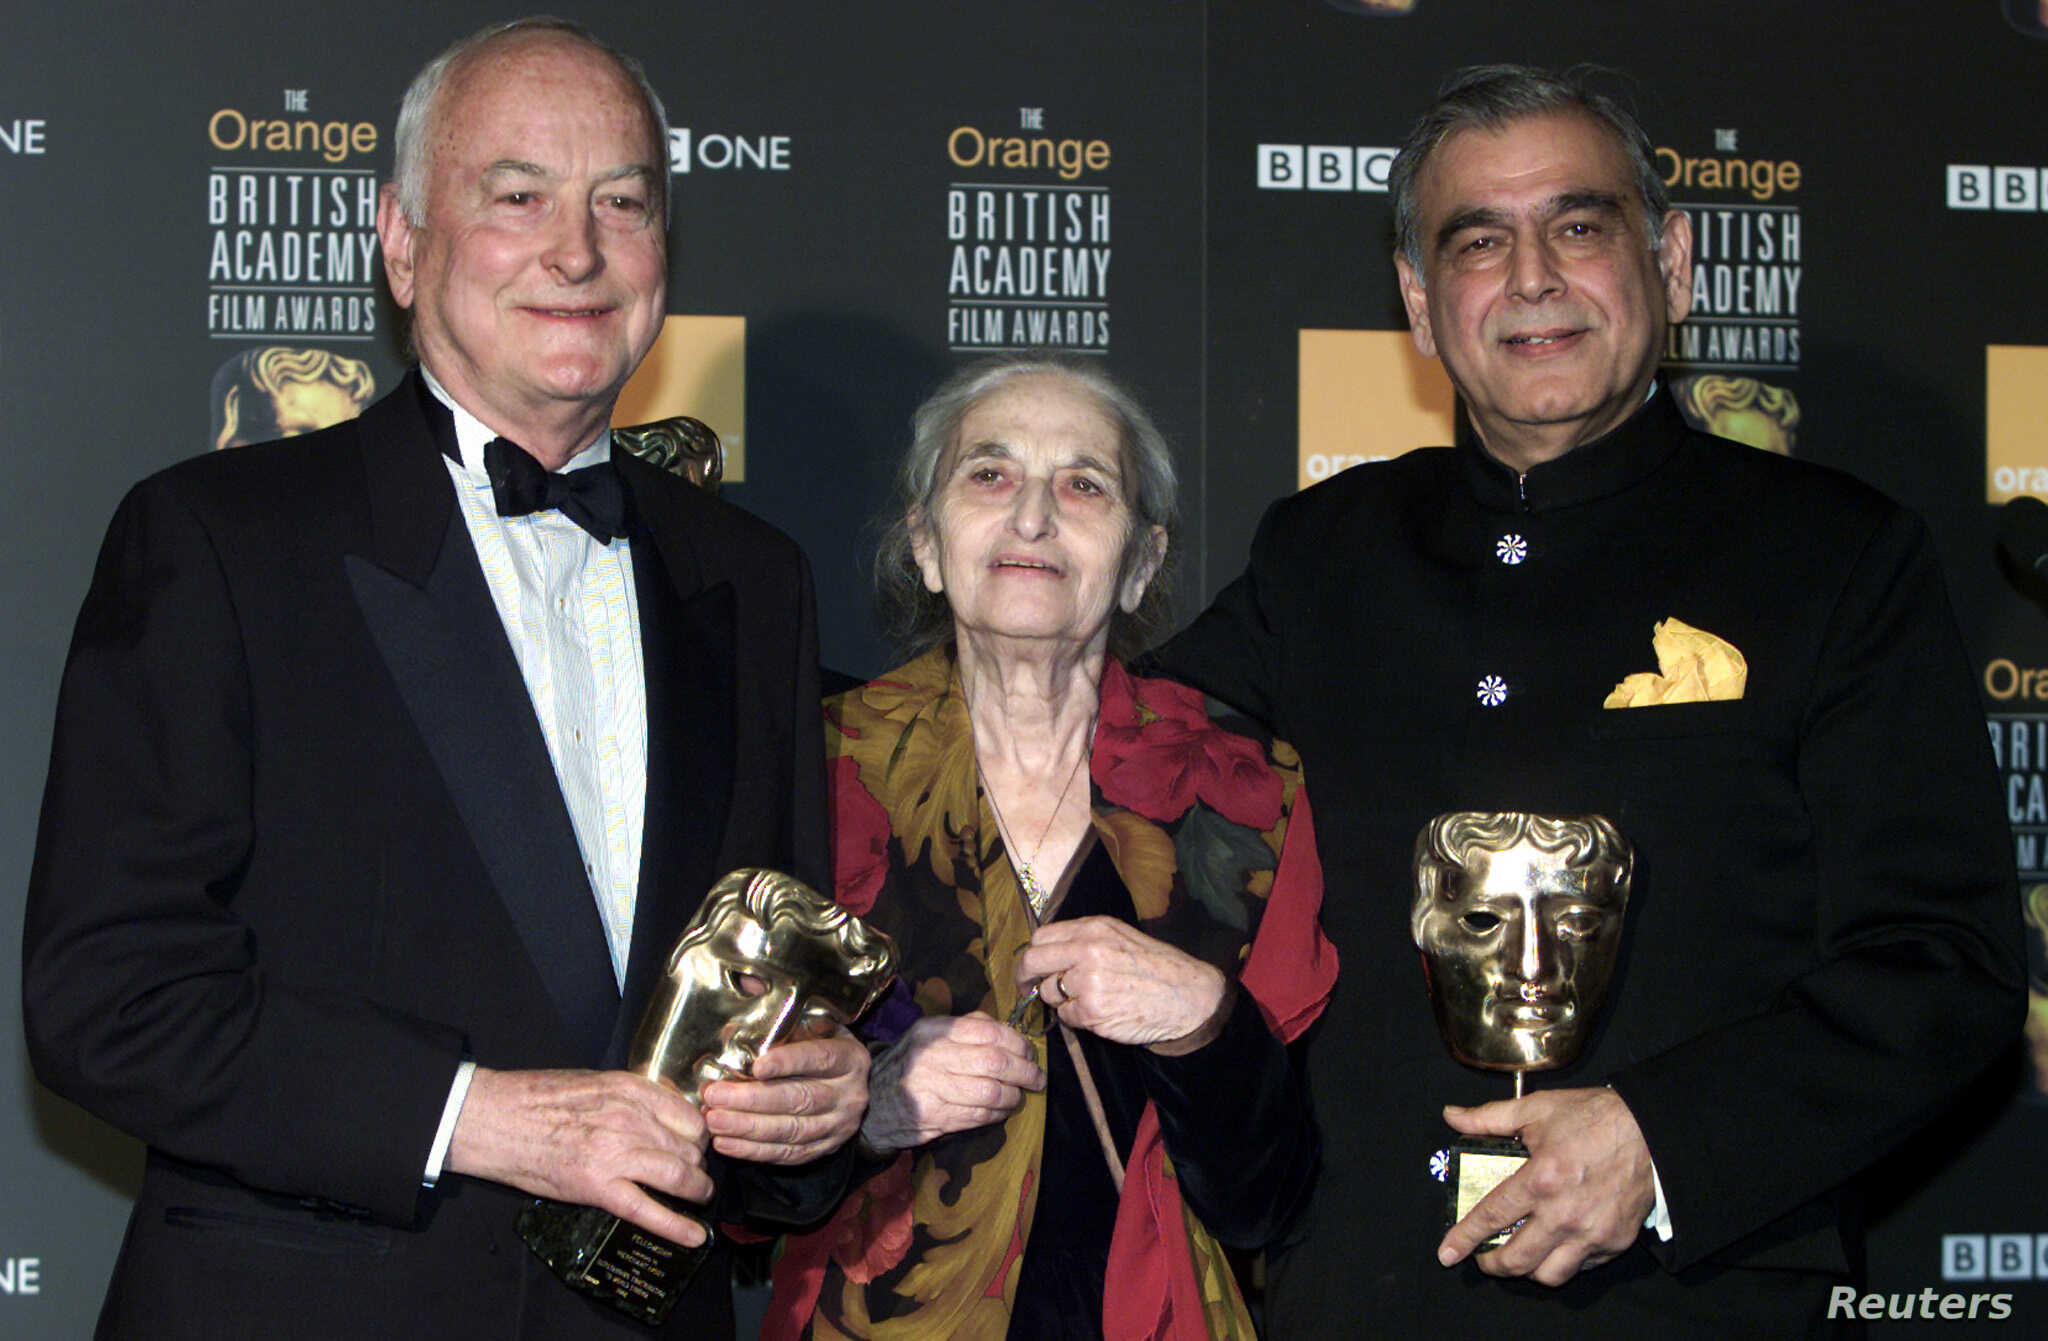 (L-R) James Ivory, Ruth Prawer Jhabvala and Ismail Merchant, who together form Merchant Ivory Productions, receive a British Academy film fellowship at a ceremony in central London, February 24, 2002.